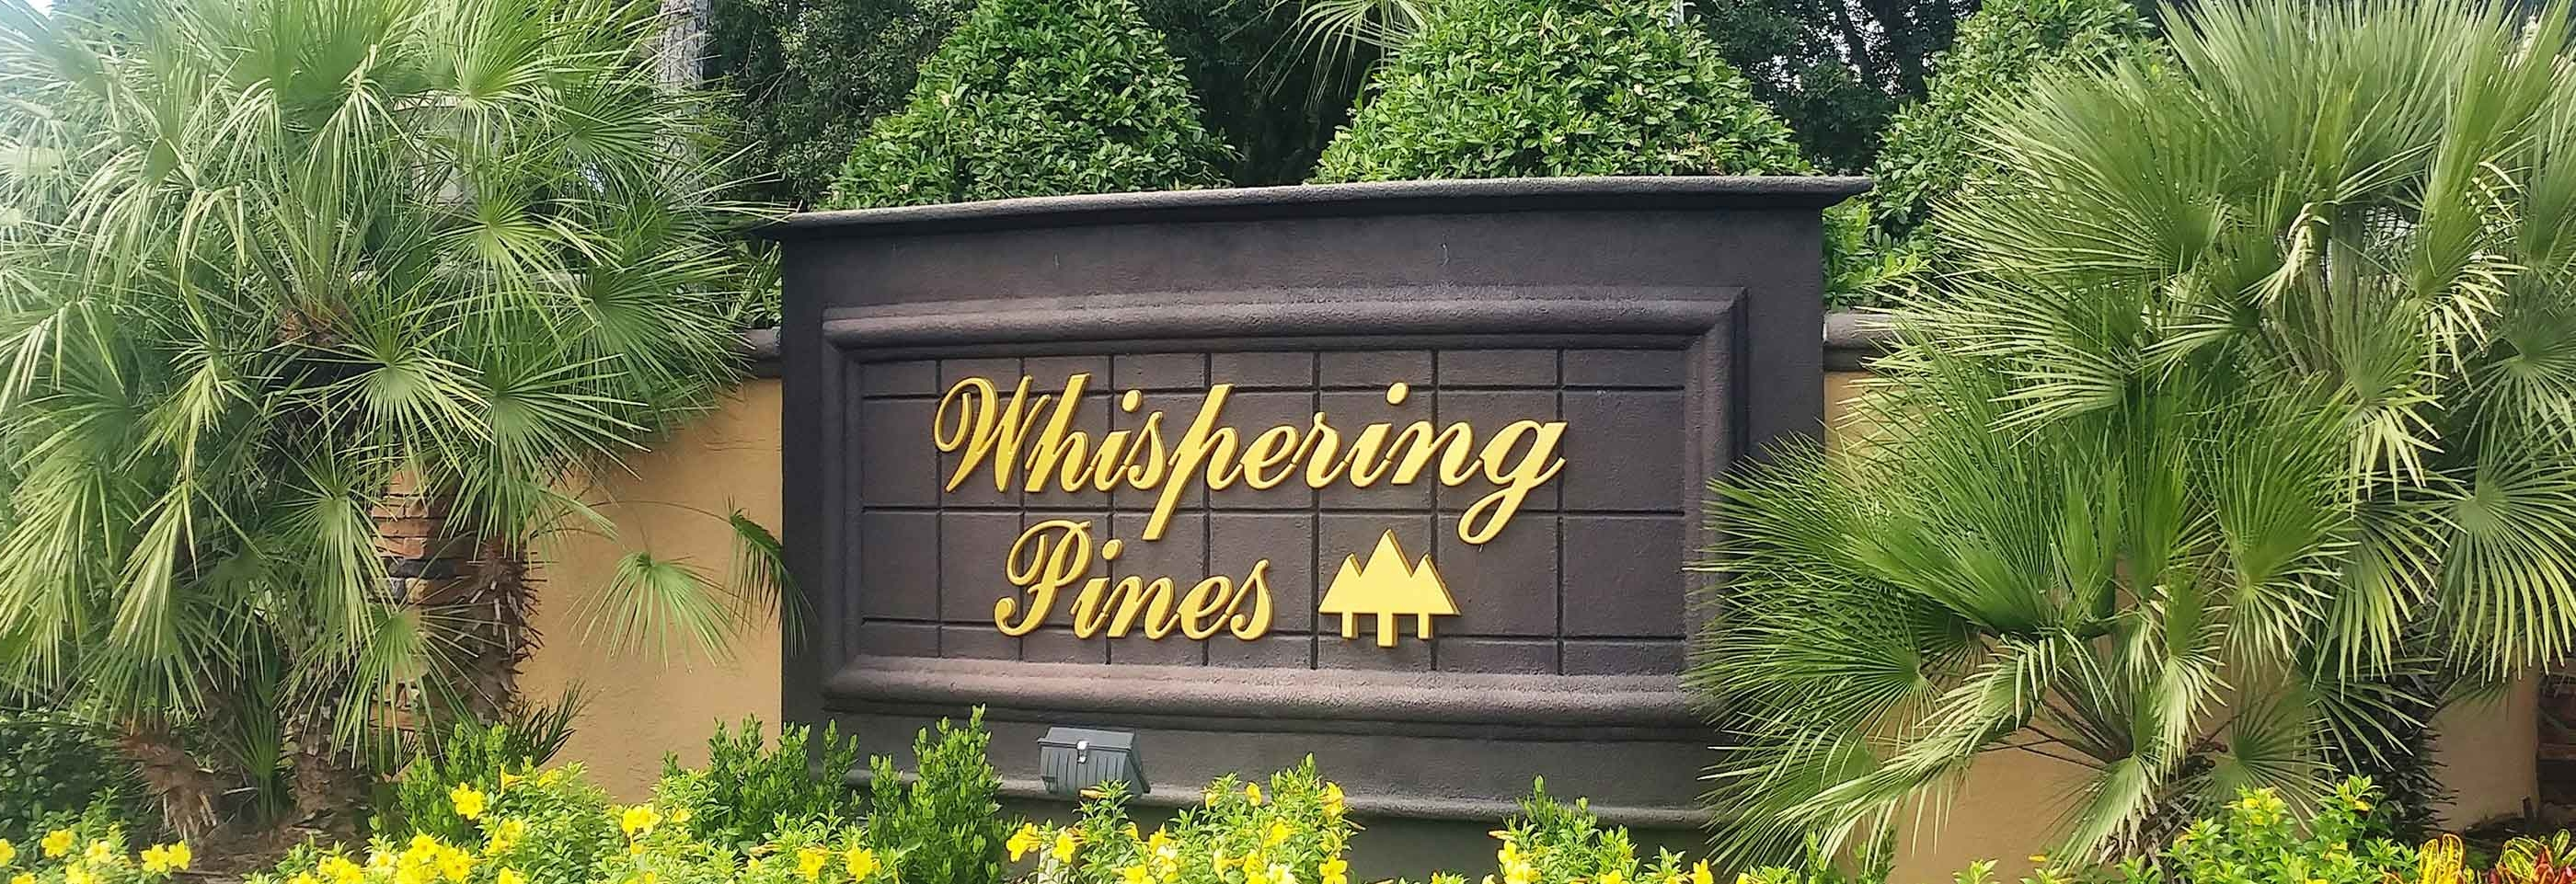 Whispering Pines Front Entrance Signage